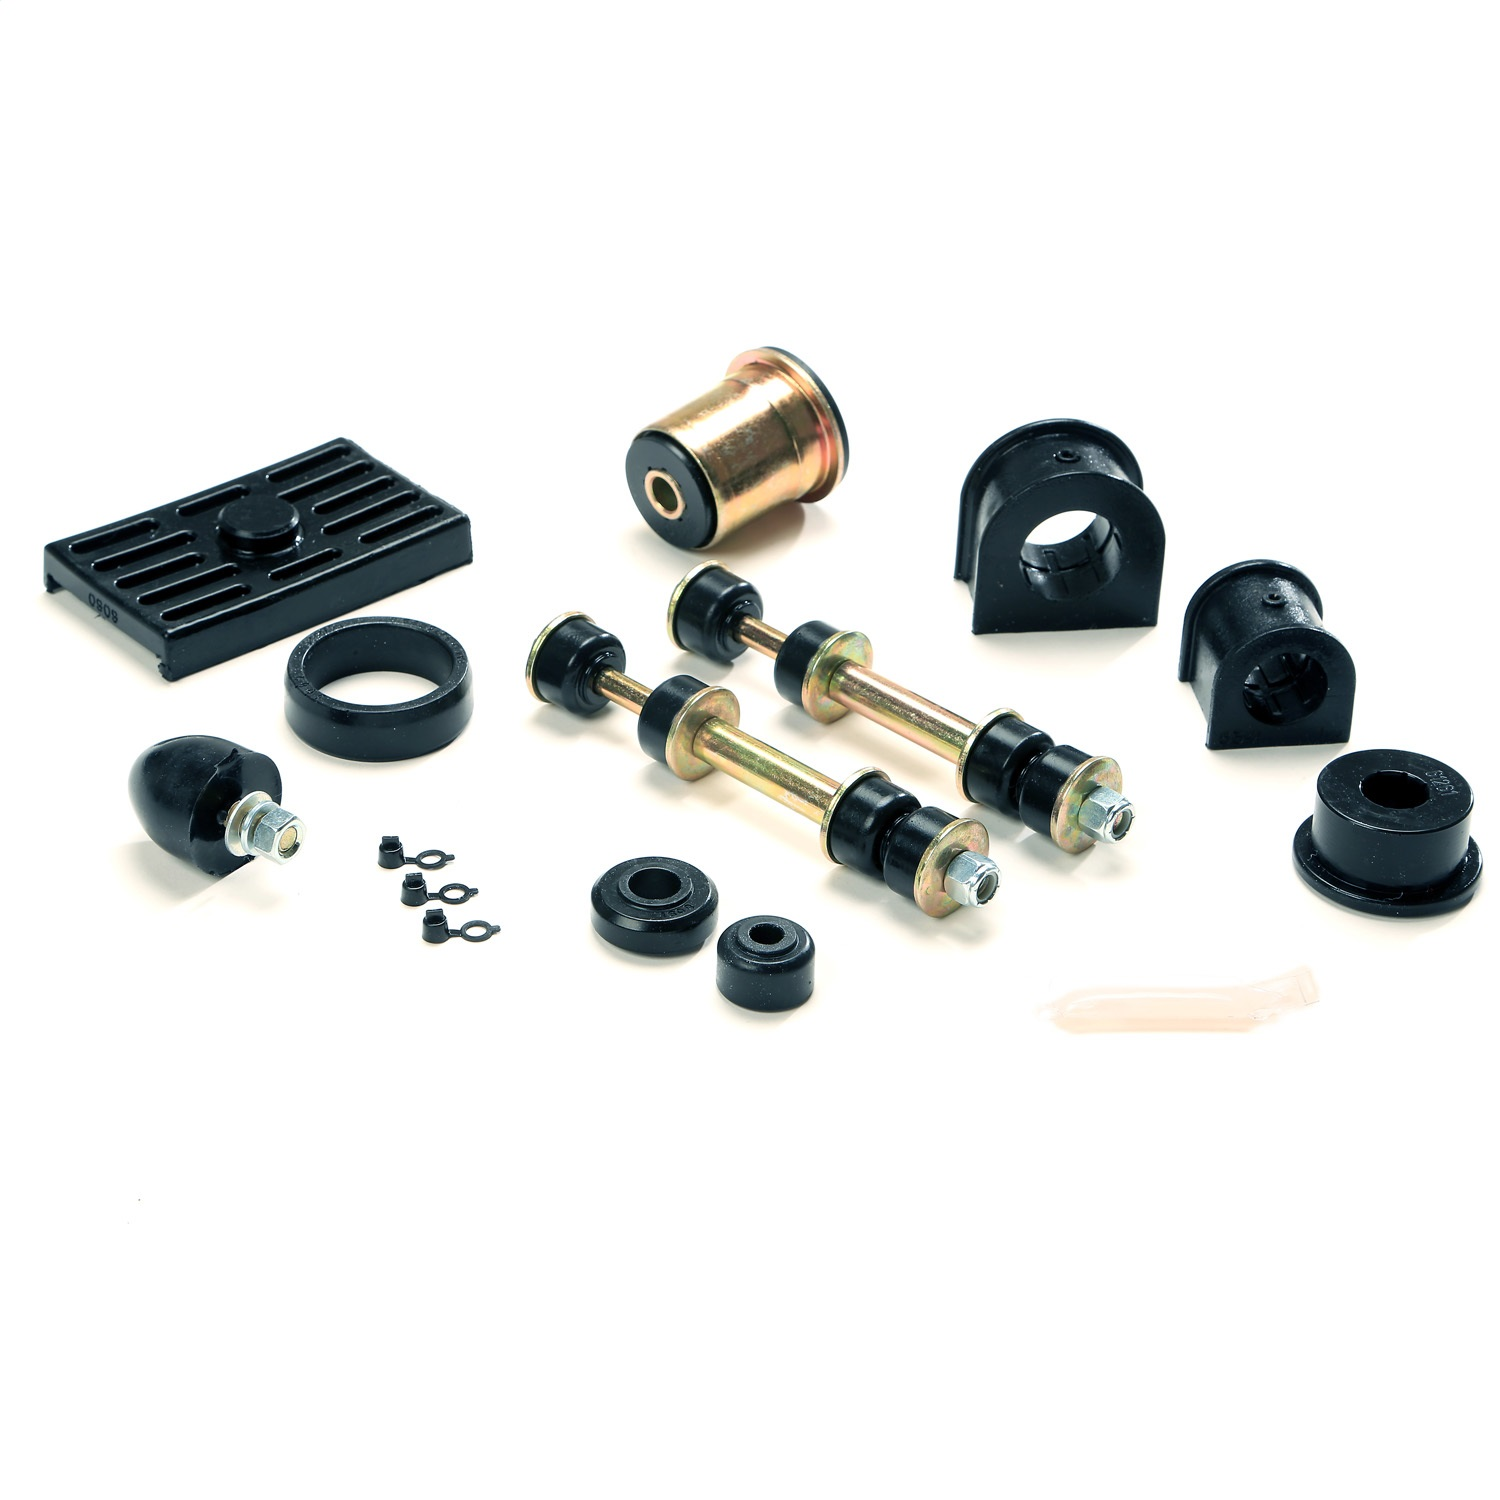 Hotchkis Performance Suspension Stabilizer Bar Bushing Kit